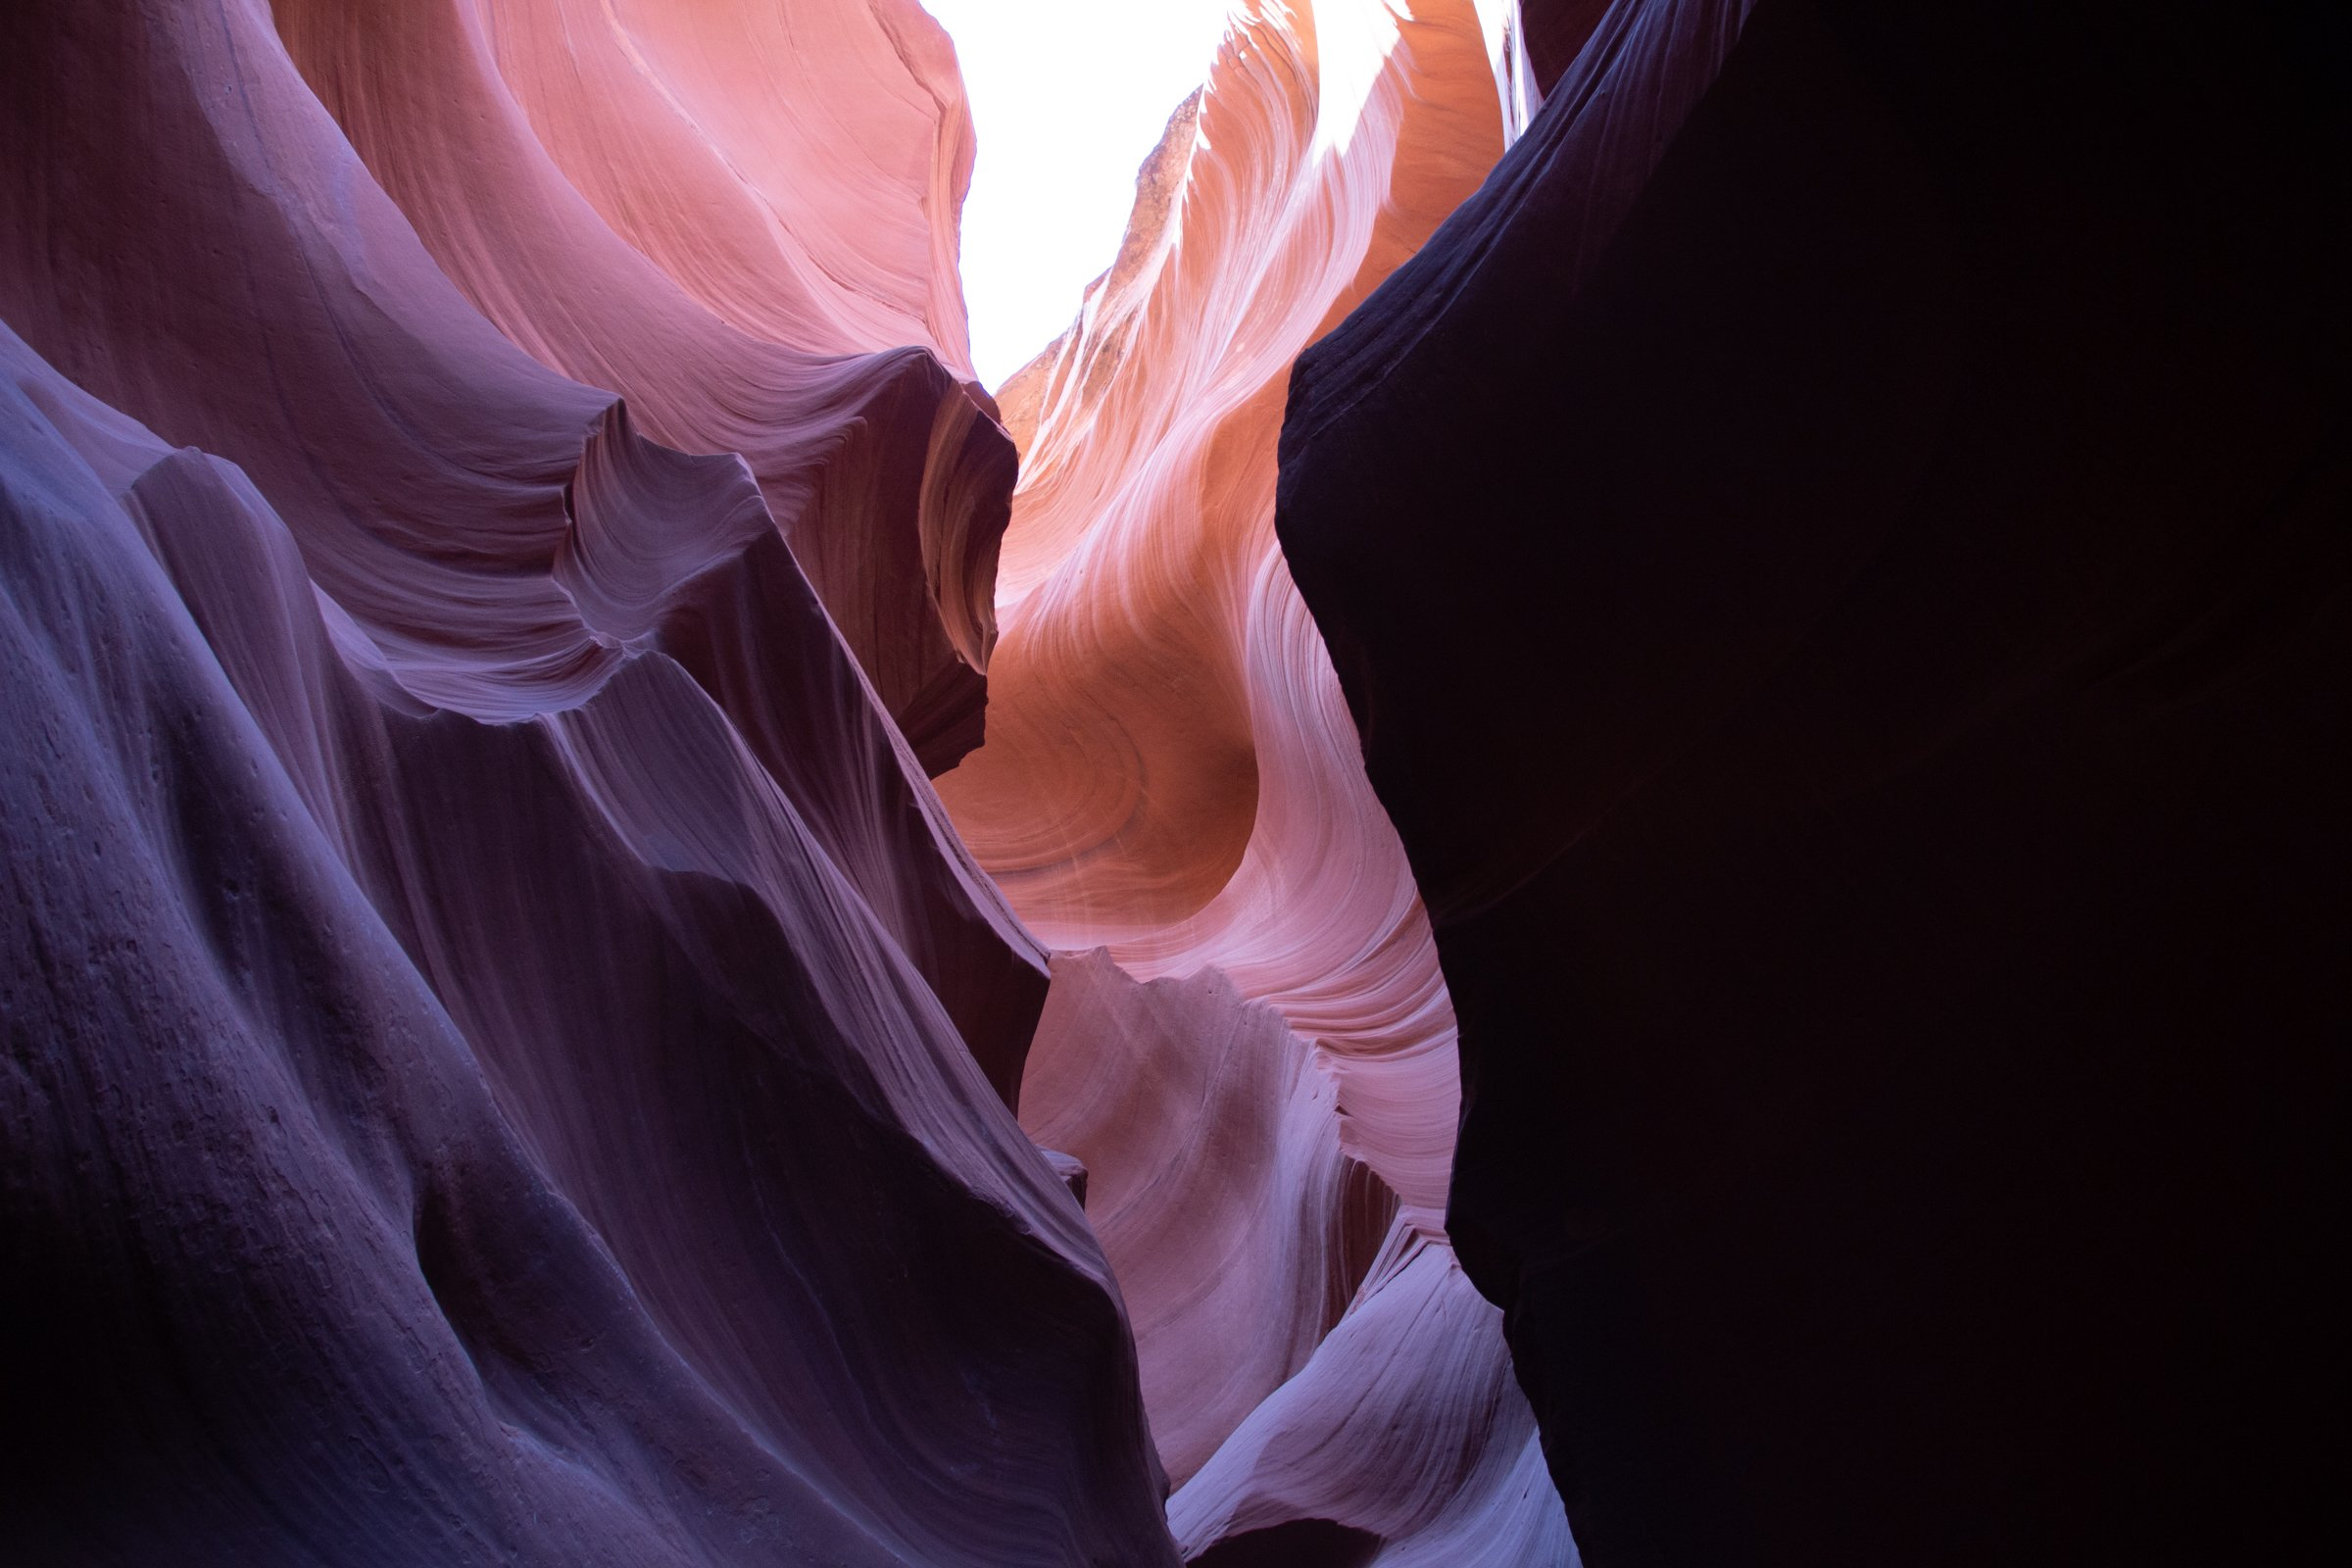 Light Illuminating Lower Antelope Canyon Textured Walls